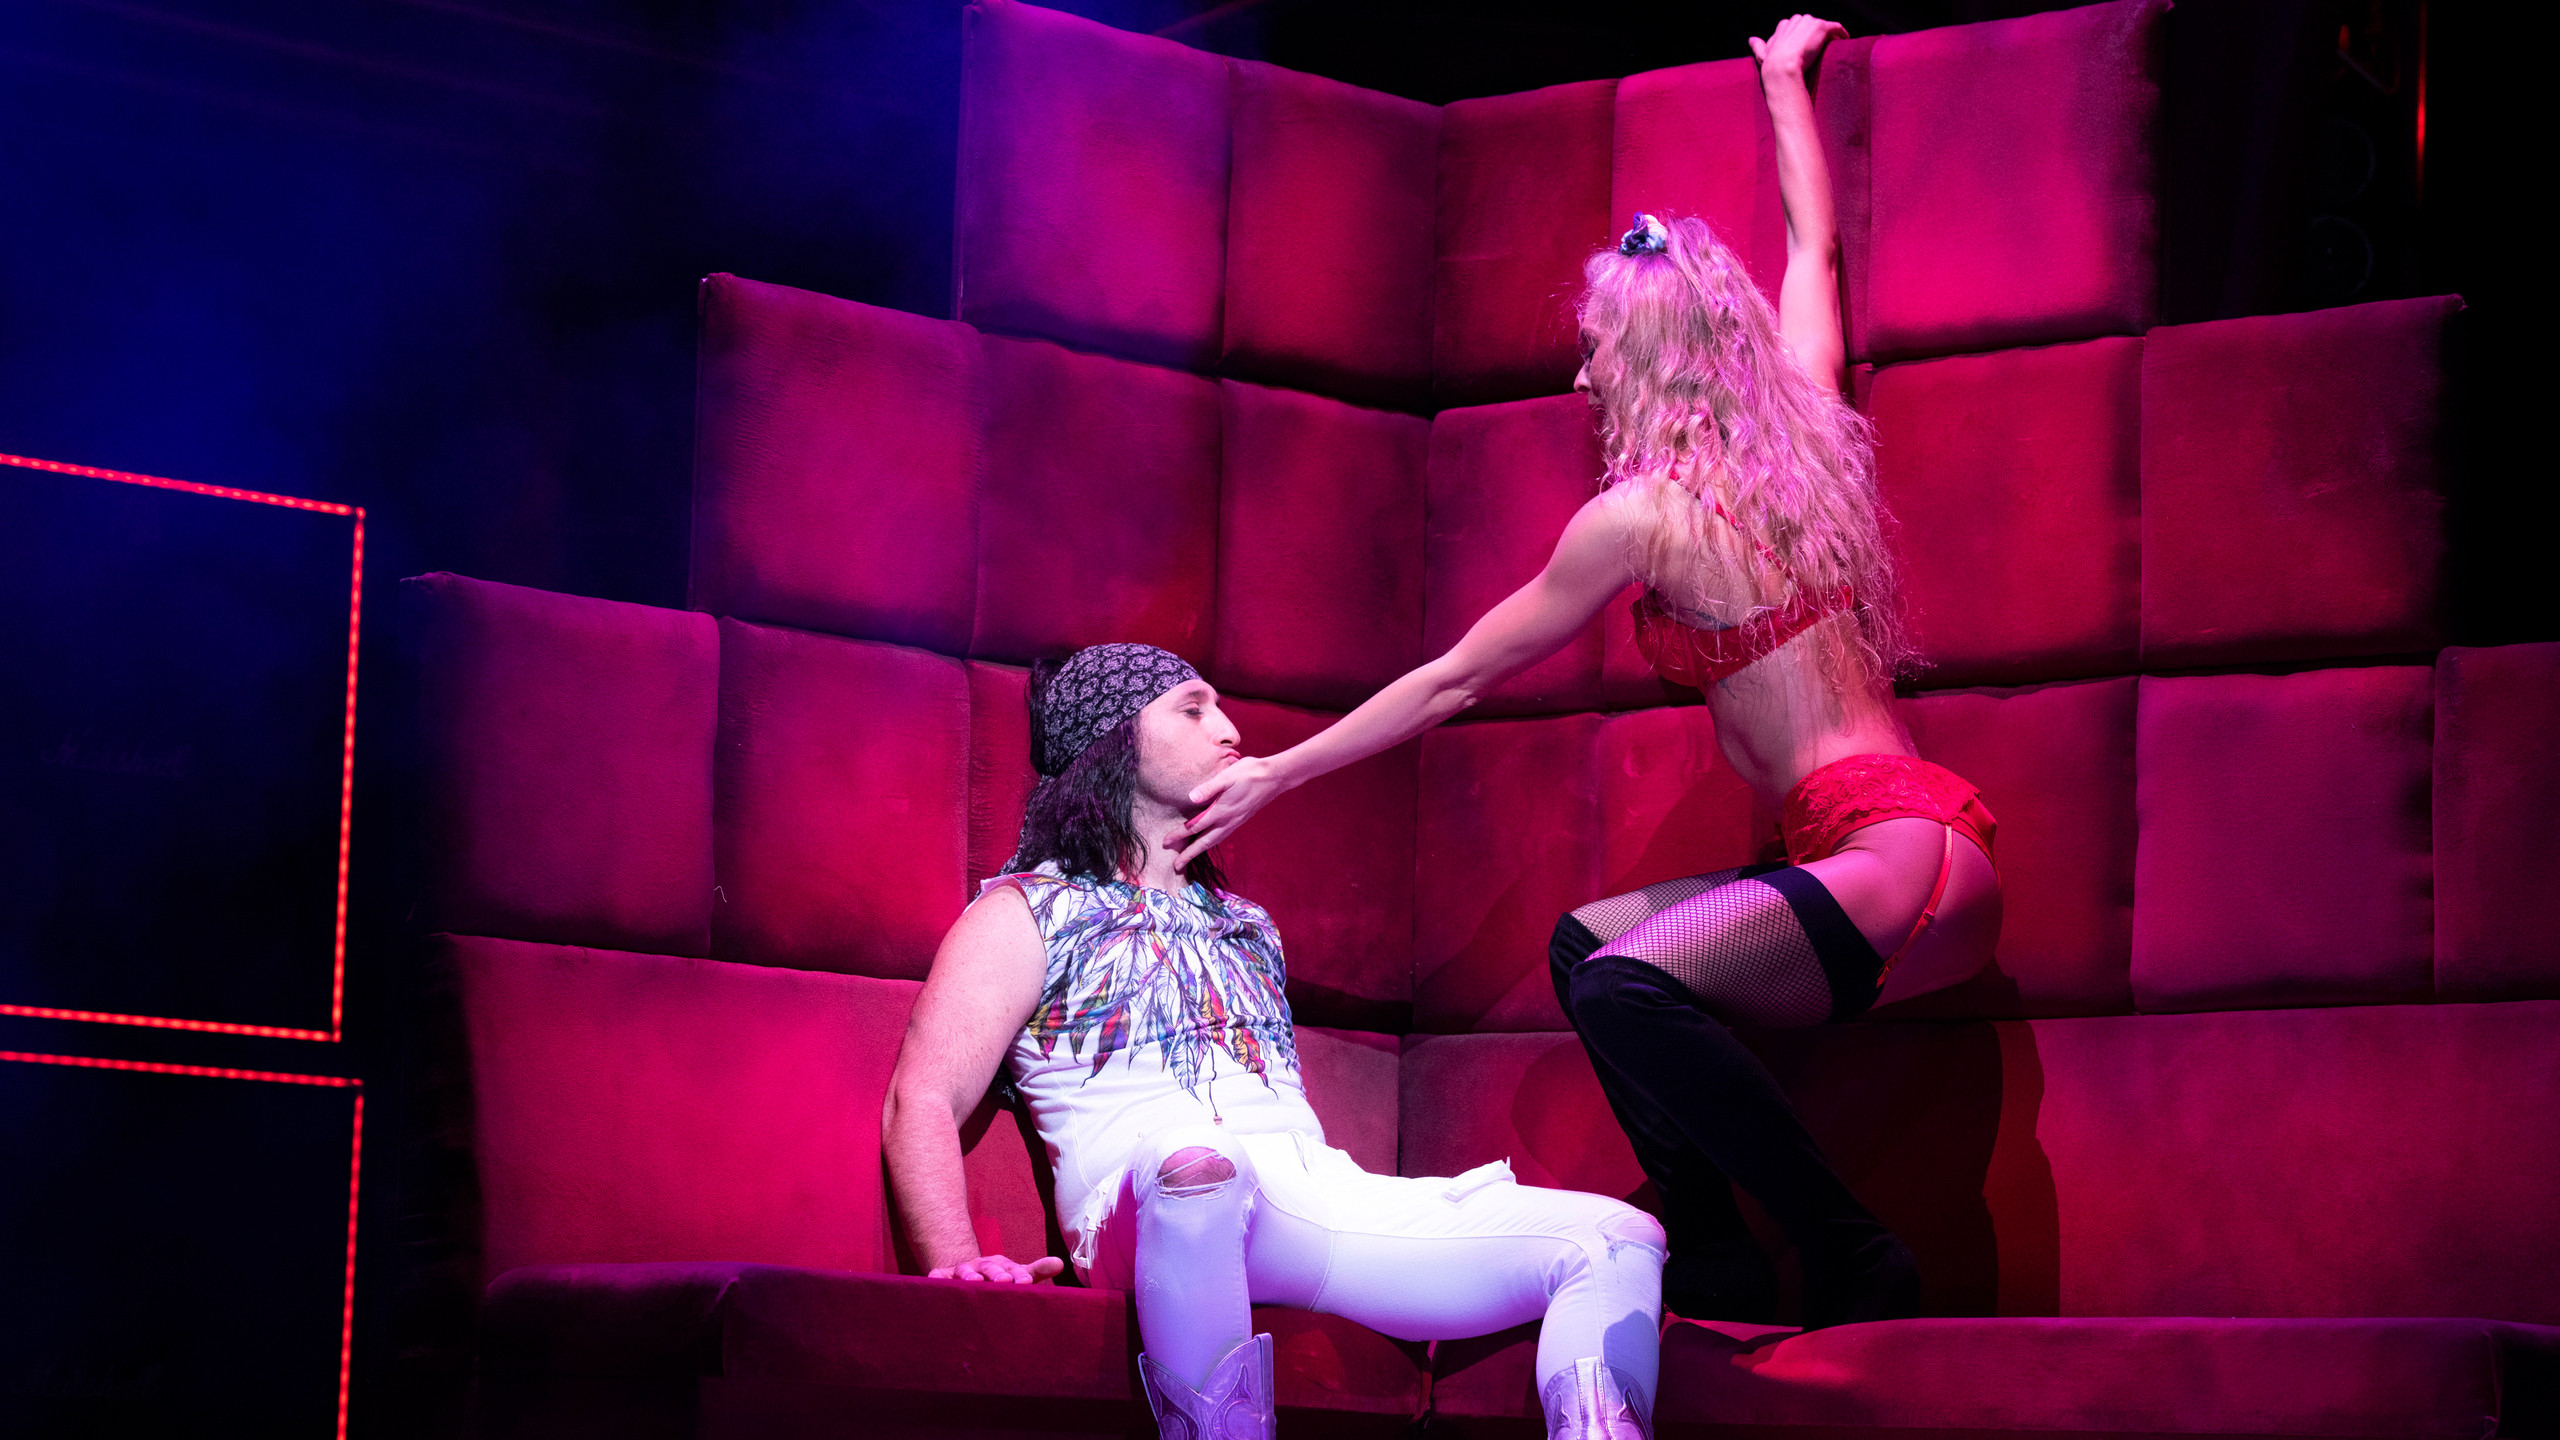 6. ROCK OF AGES